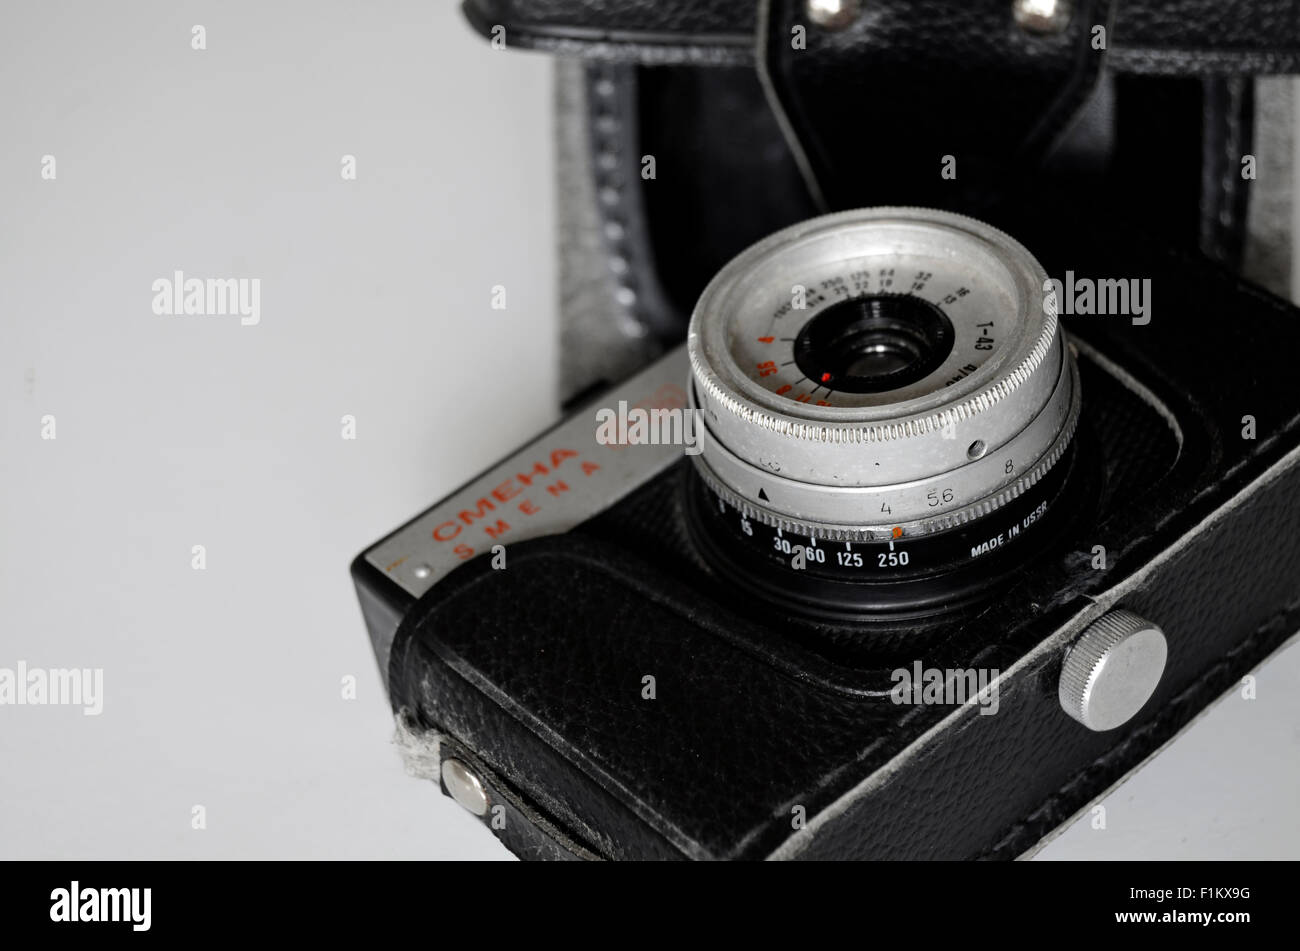 Camera 'CMEHA' made in CCCP - Stock Image